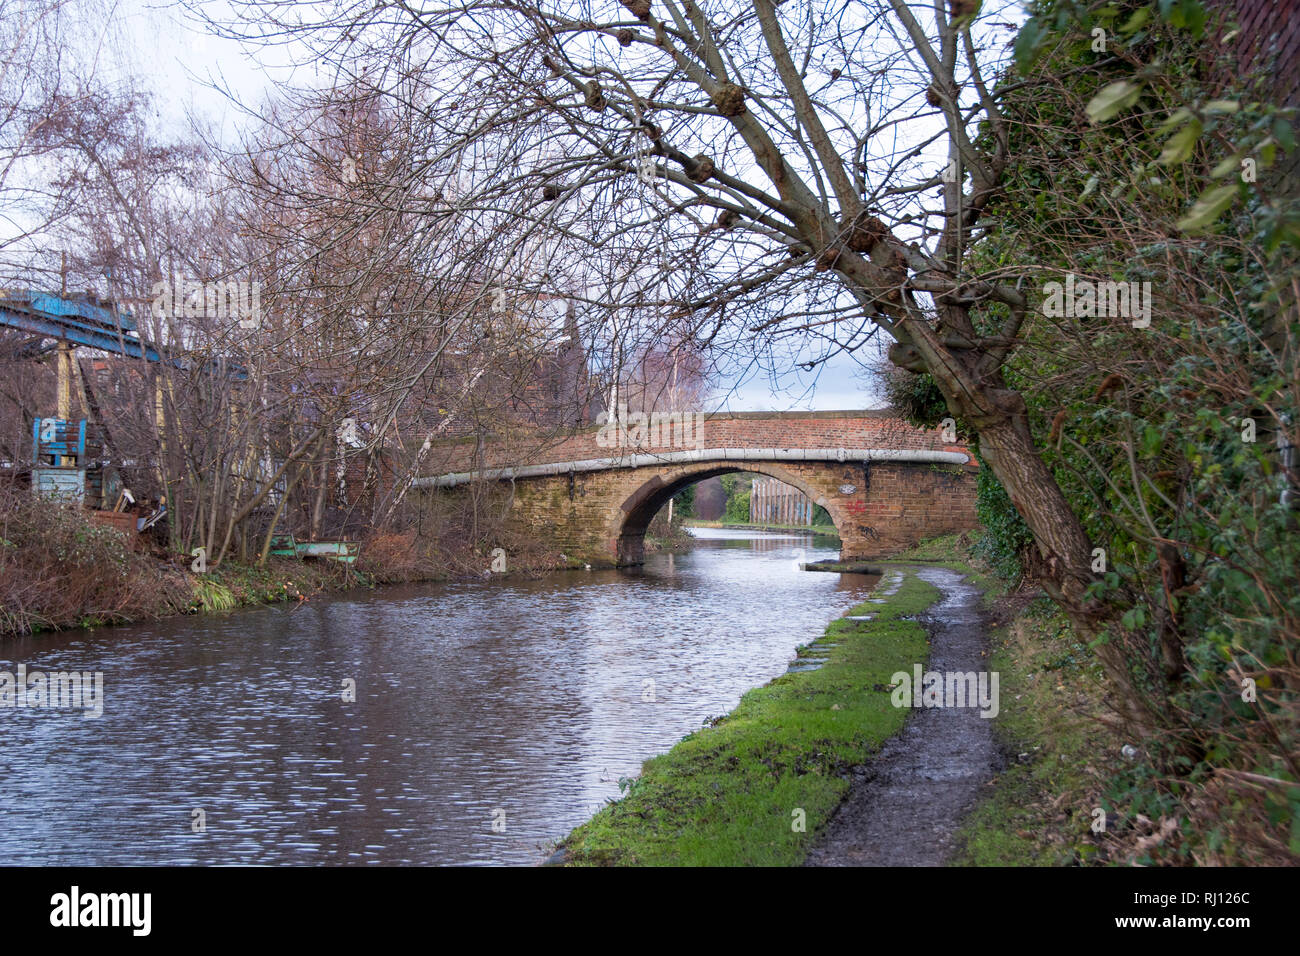 Sheffield, UK – January 24 2016 : A wet towpath leads to Bacon Lane Bridge No 6 on a winter's day on the Sheffield and Tinsley Canal - Stock Image